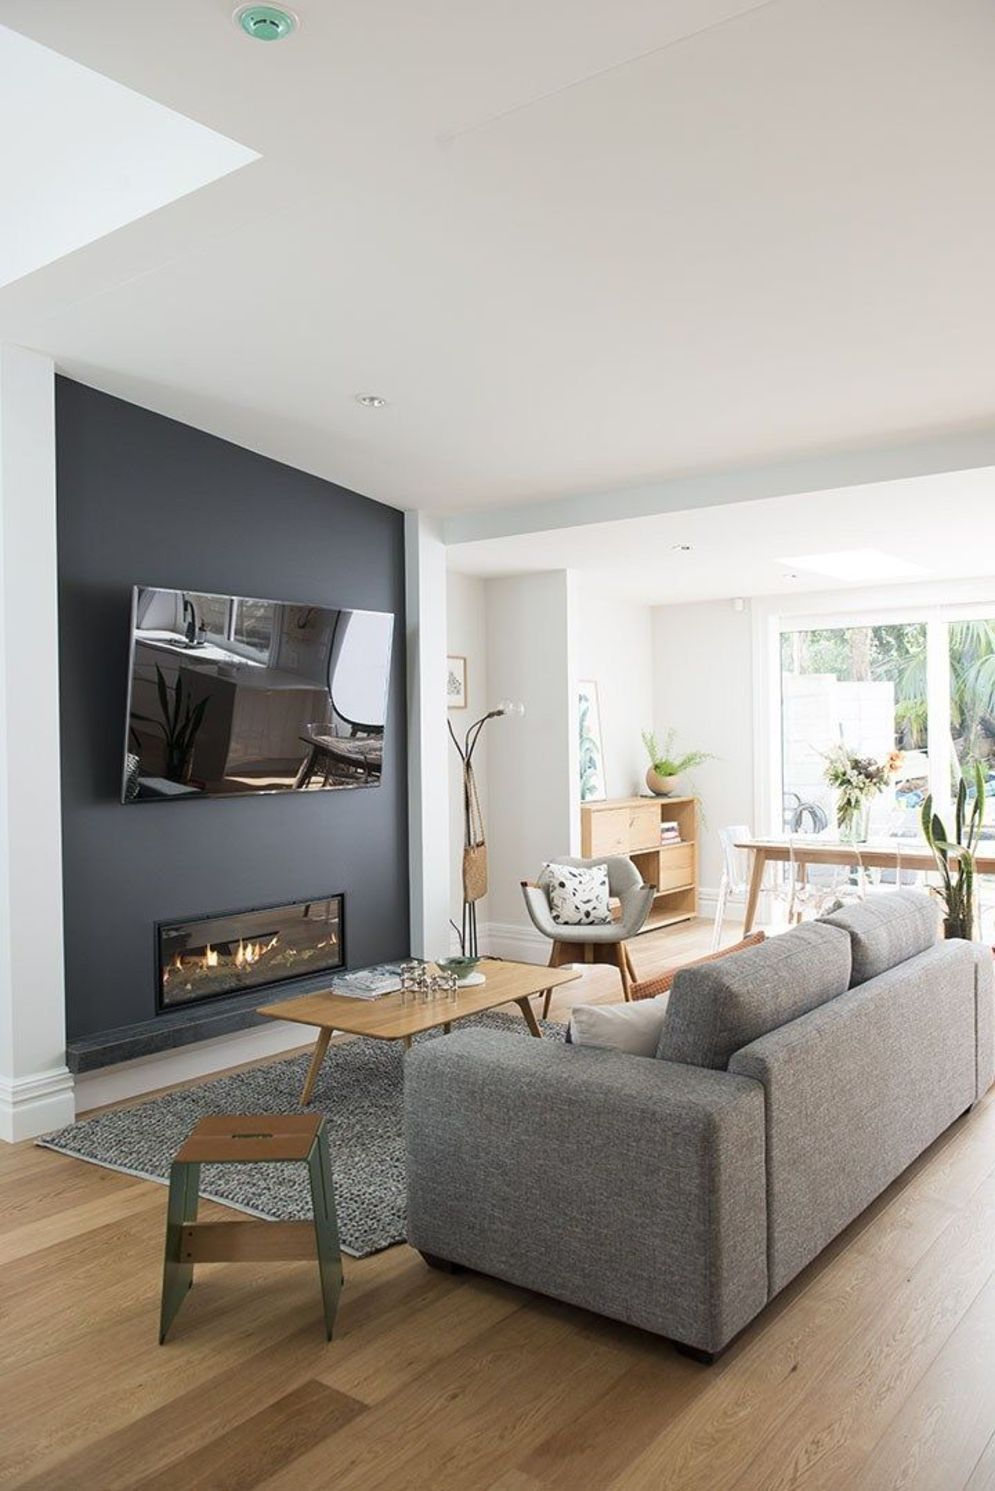 Best Fireplace Tv Wall Ideas The Good Advice For Mounting Tv Above Fireplace Shairoom Com Feature Wall Living Room Apartment Living Room Living Room Modern